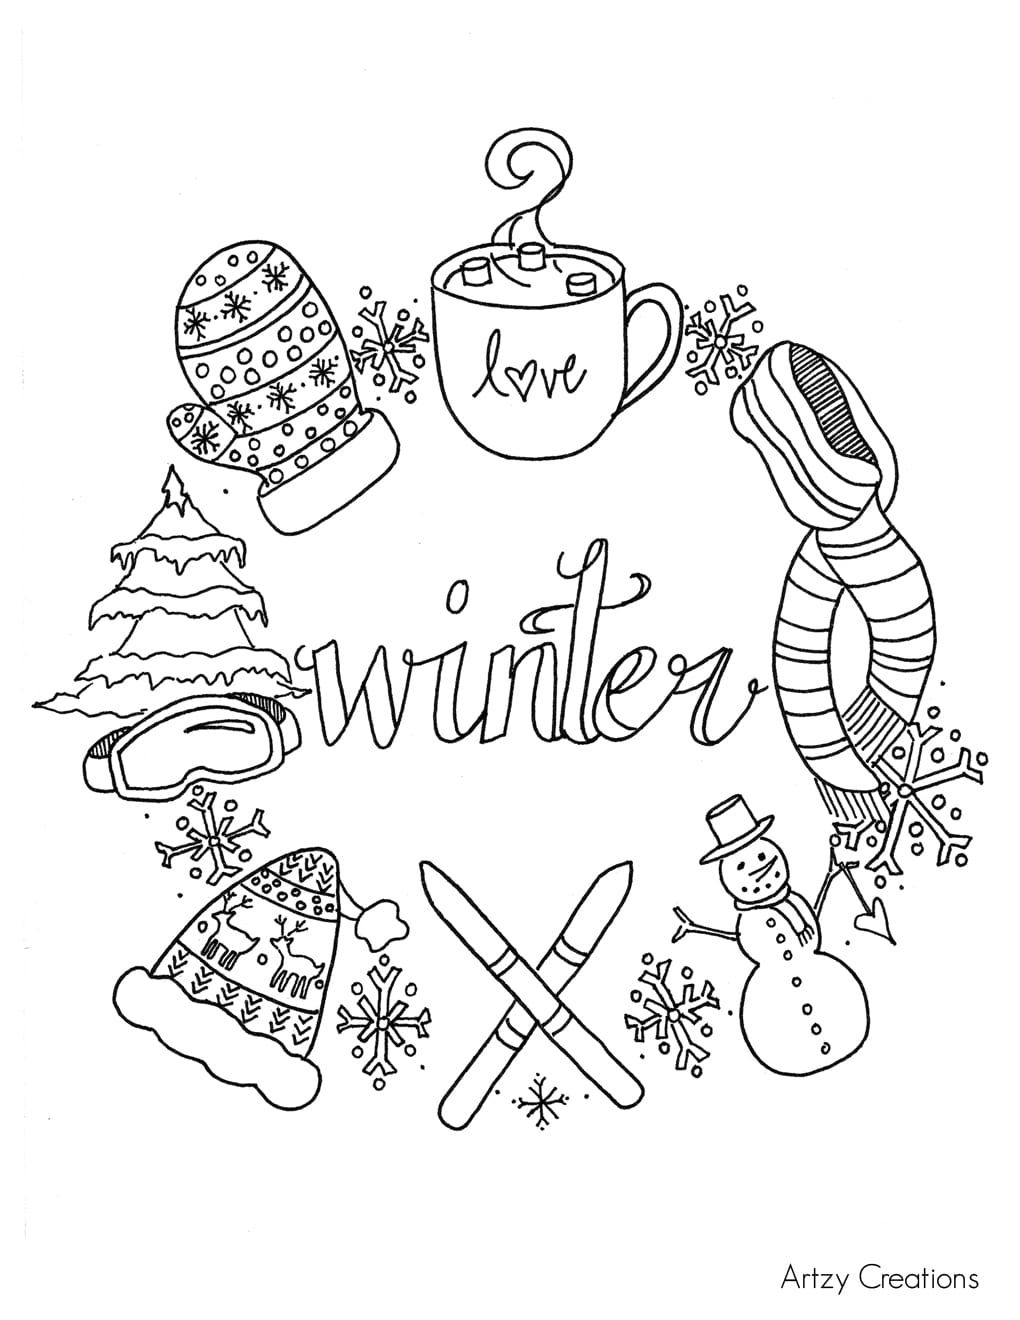 Winter Coloring Pages Printables Winter Puzzle Coloring Pages Printable Winter Themed In 2020 Penguin Coloring Pages Cool Coloring Pages Coloring Pages Winter